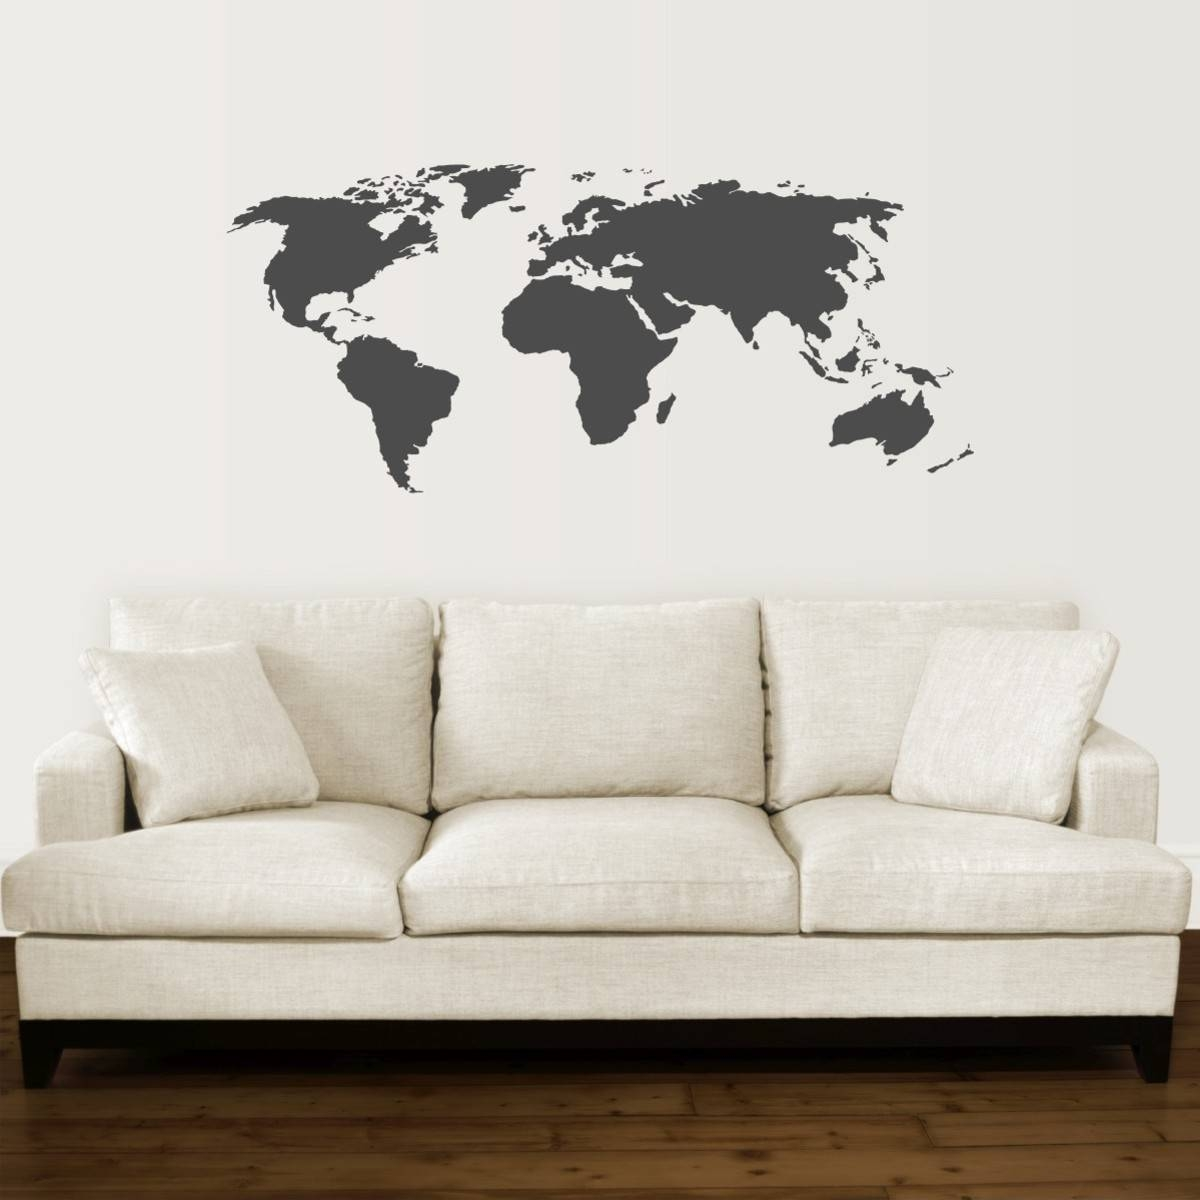 Zspmed Of World Map Wall Art Cool About Remodel Small Home Decor Regarding Most Recently Released Cool Map Wall Art (View 20 of 20)